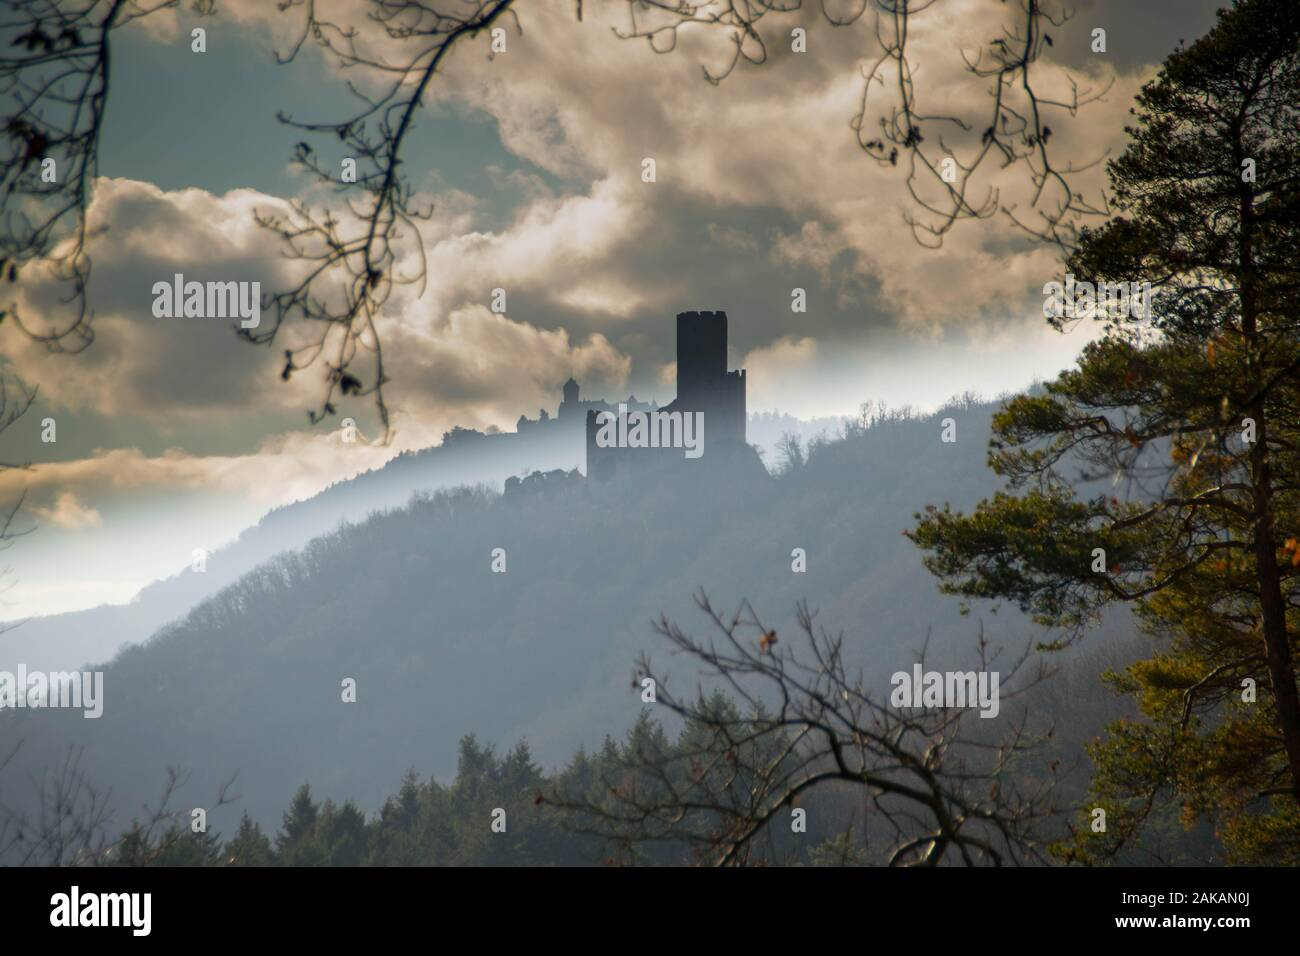 ortenbourg castle ruin and its view in the vosges mountains in france Stock Photo